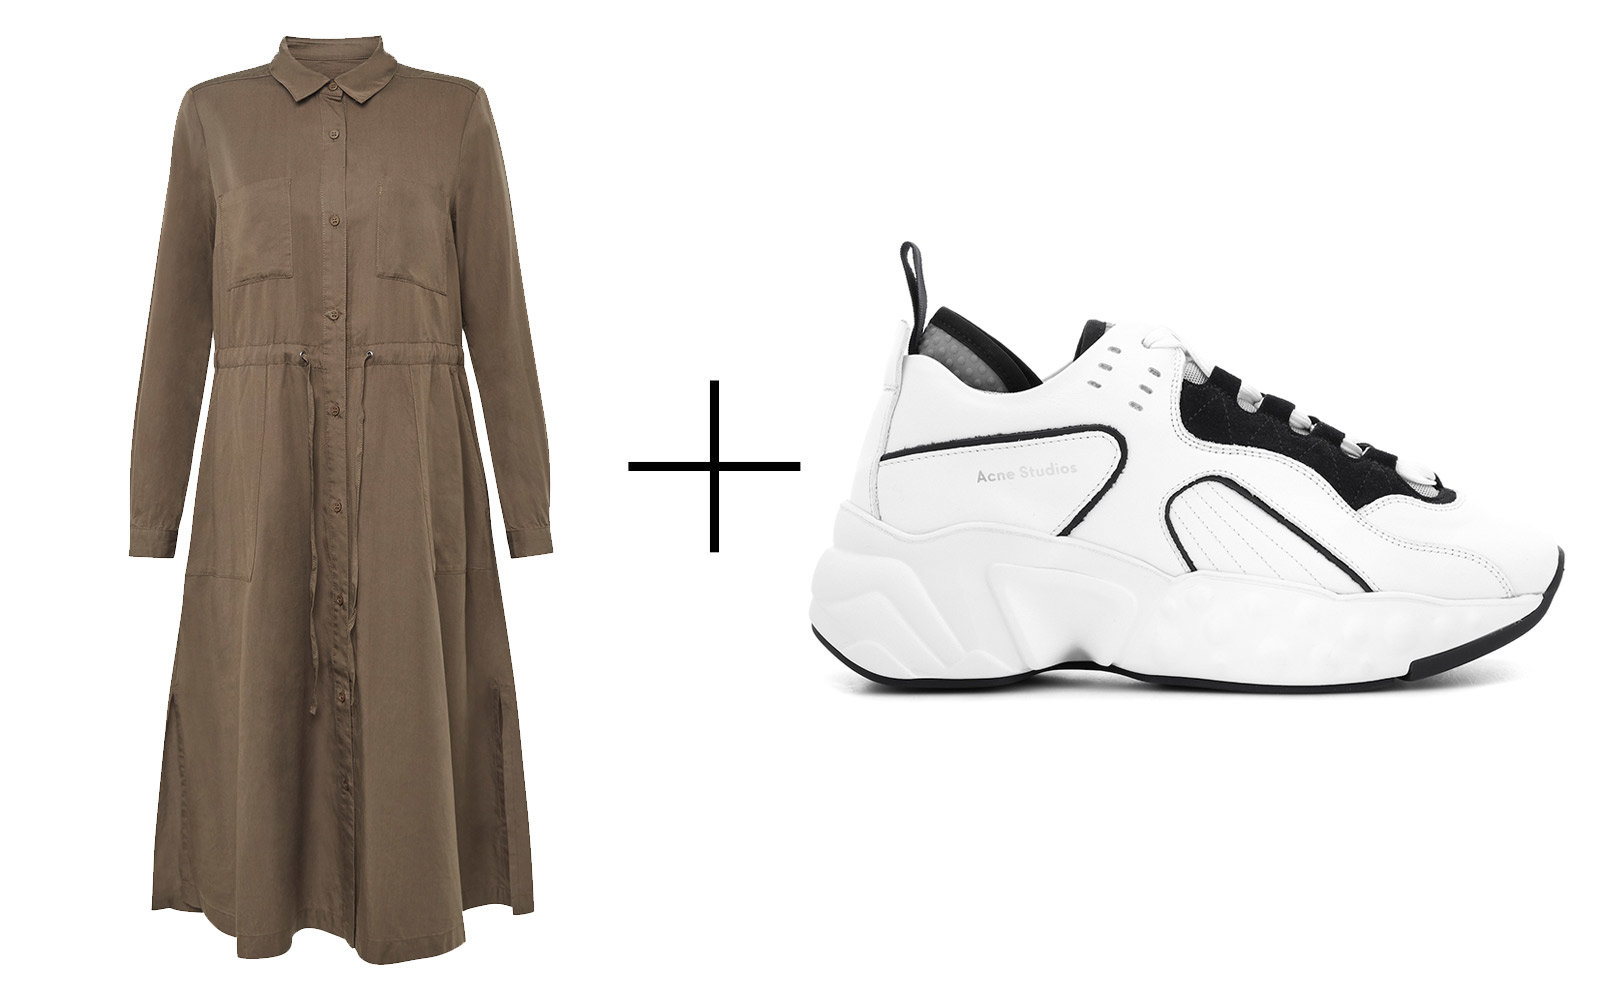 French Connection 'Aventine Plains' Midi Shirt Dress & Acne Studios 'Manhattan' Leather Sneakers